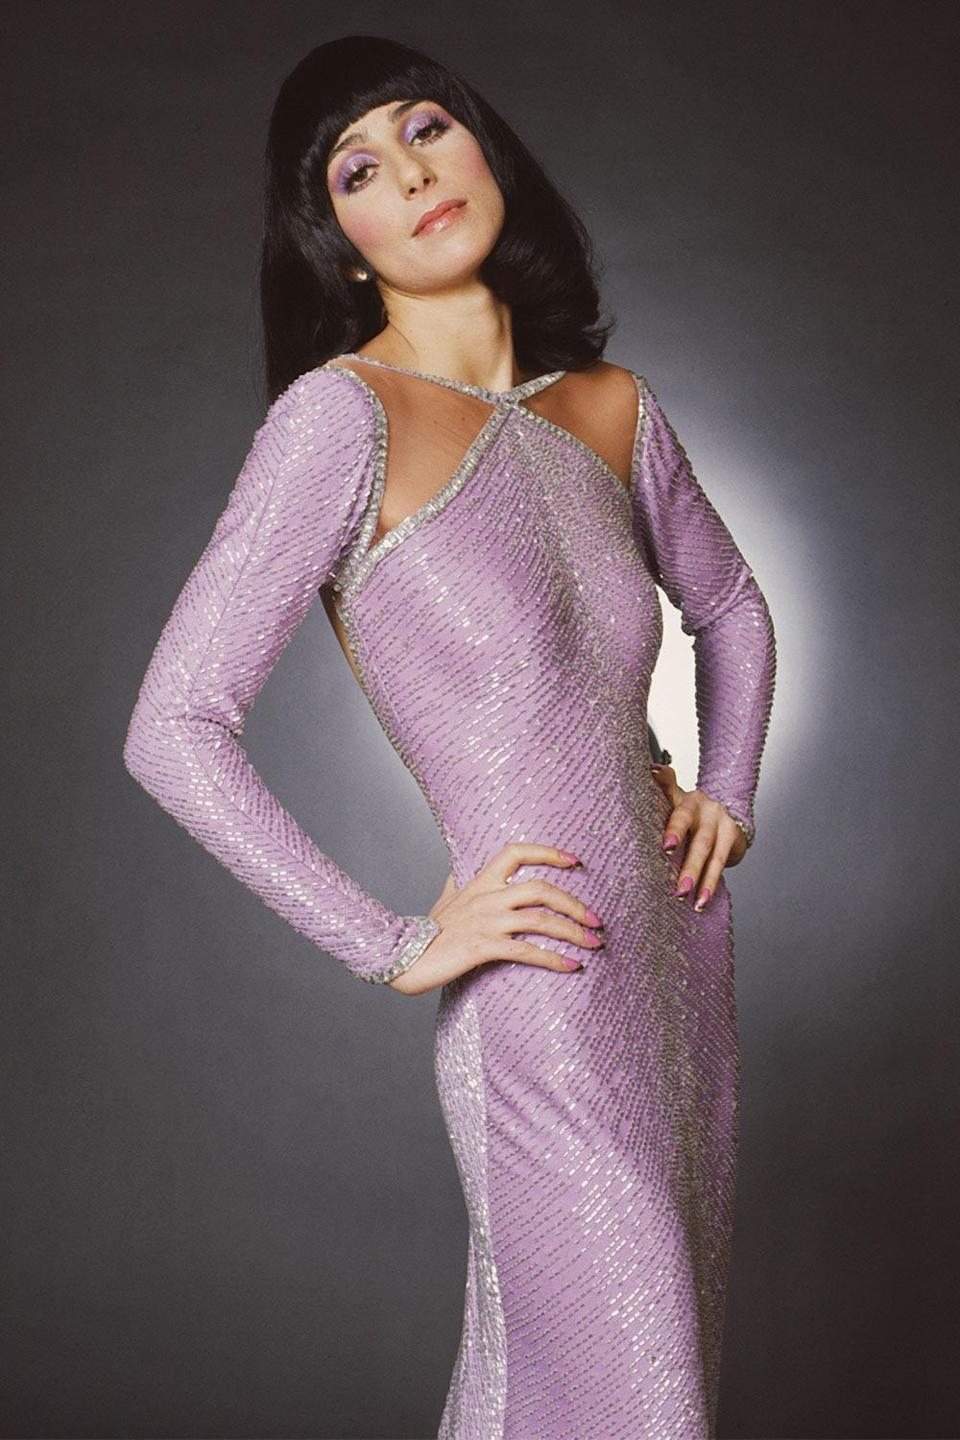 <p>In 1972, Cher looked effortlessly elegant in a lilac sequined gown for <i>The Sonny and Cher Comedy Hour. </i></p>